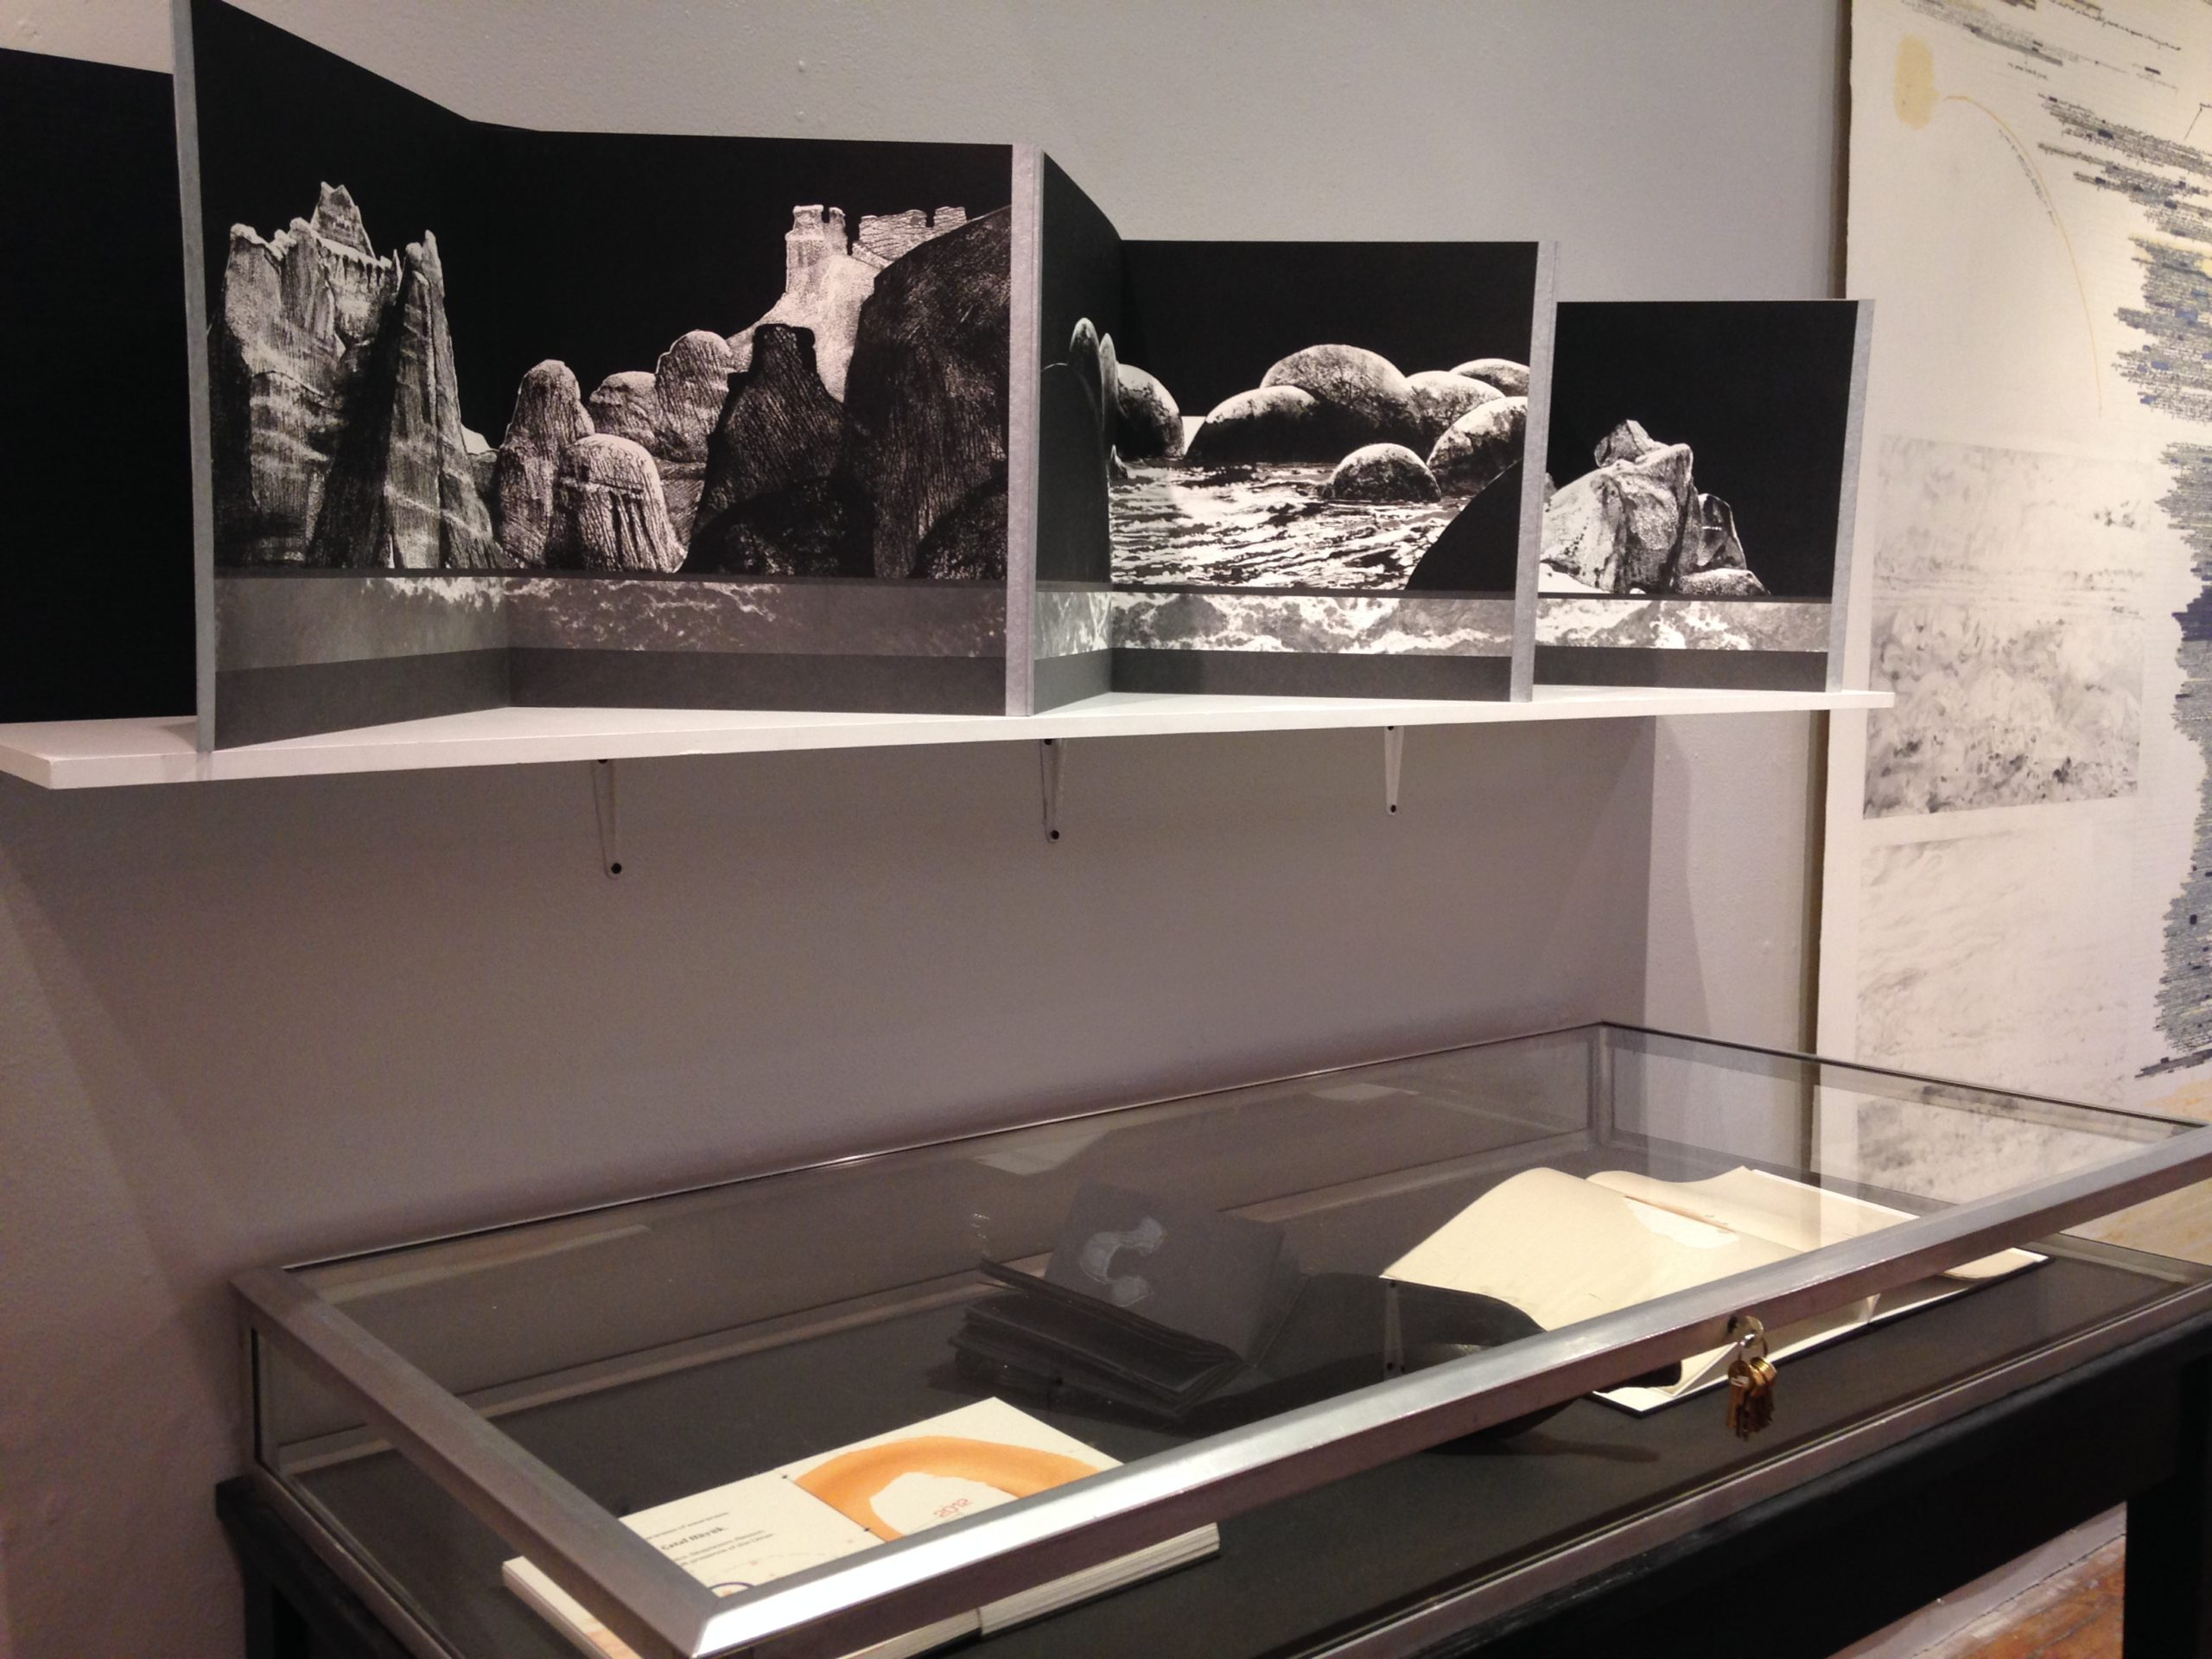 Installation View of Redux curated by Maddy Rosenberg